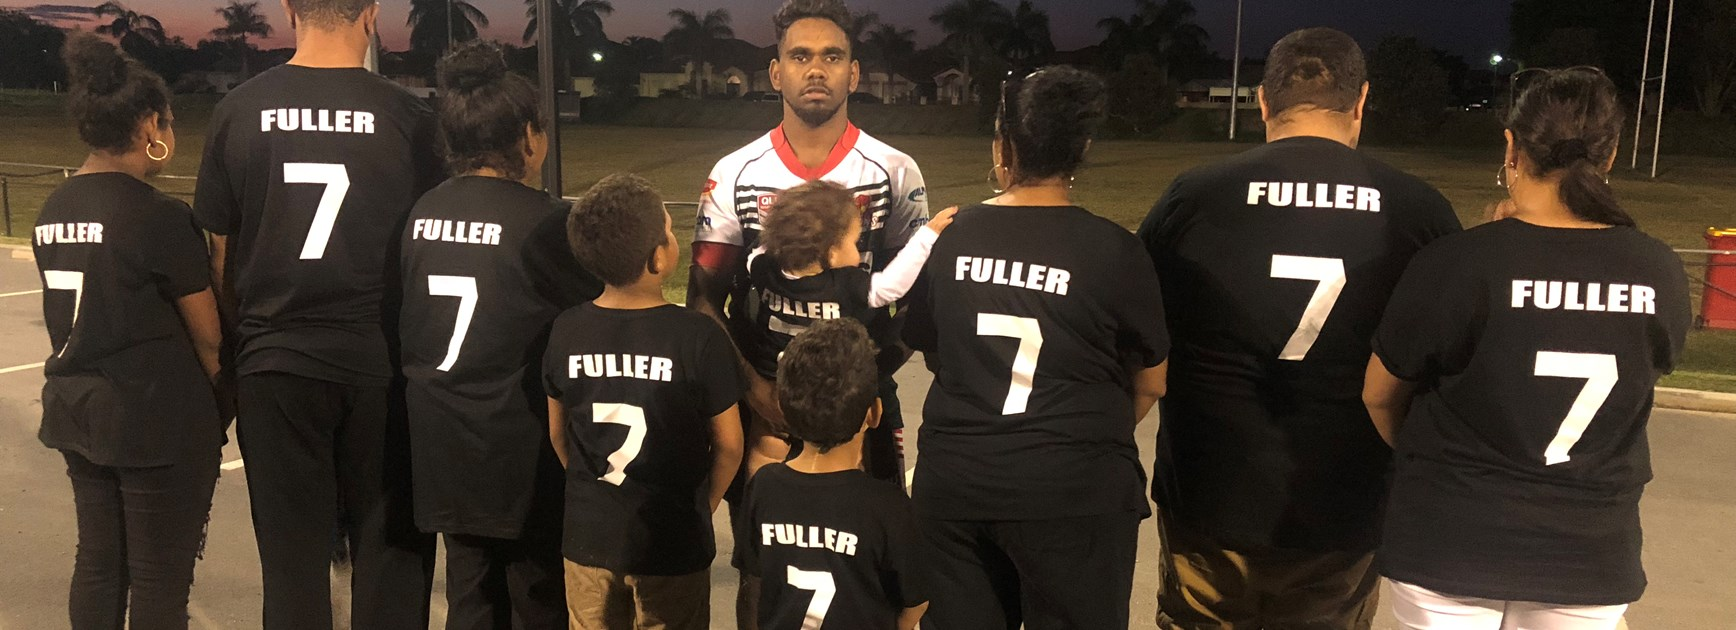 Fuller family support for rising Gold Coast player